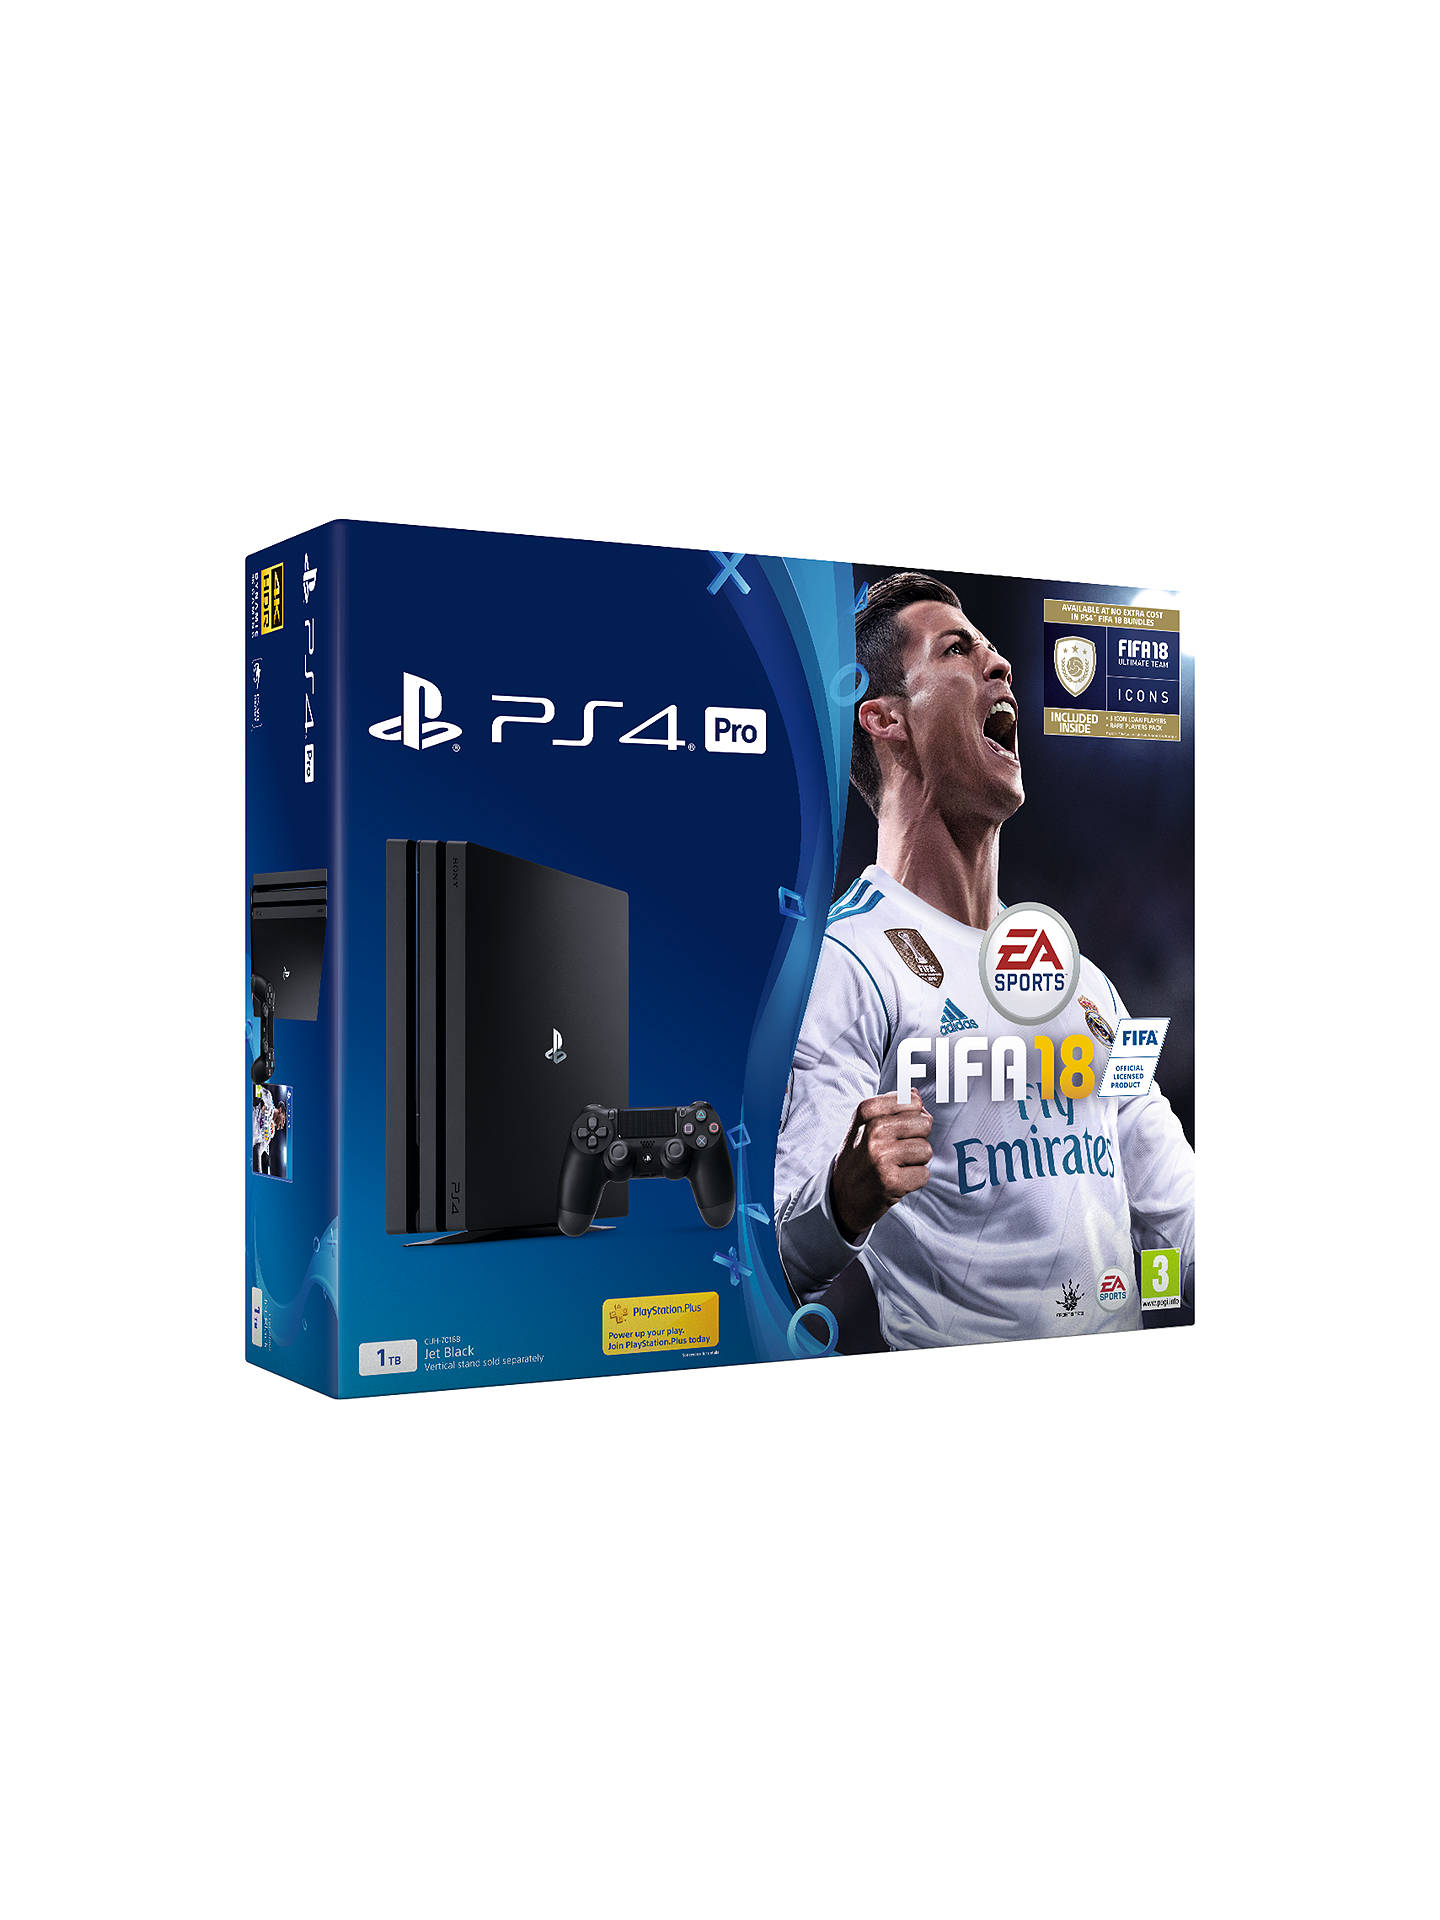 BuySony PlayStation 4 Pro Console, 1TB, with DUALSHOCK 4 Controller and FIFA 18, Jet Black Online at johnlewis.com